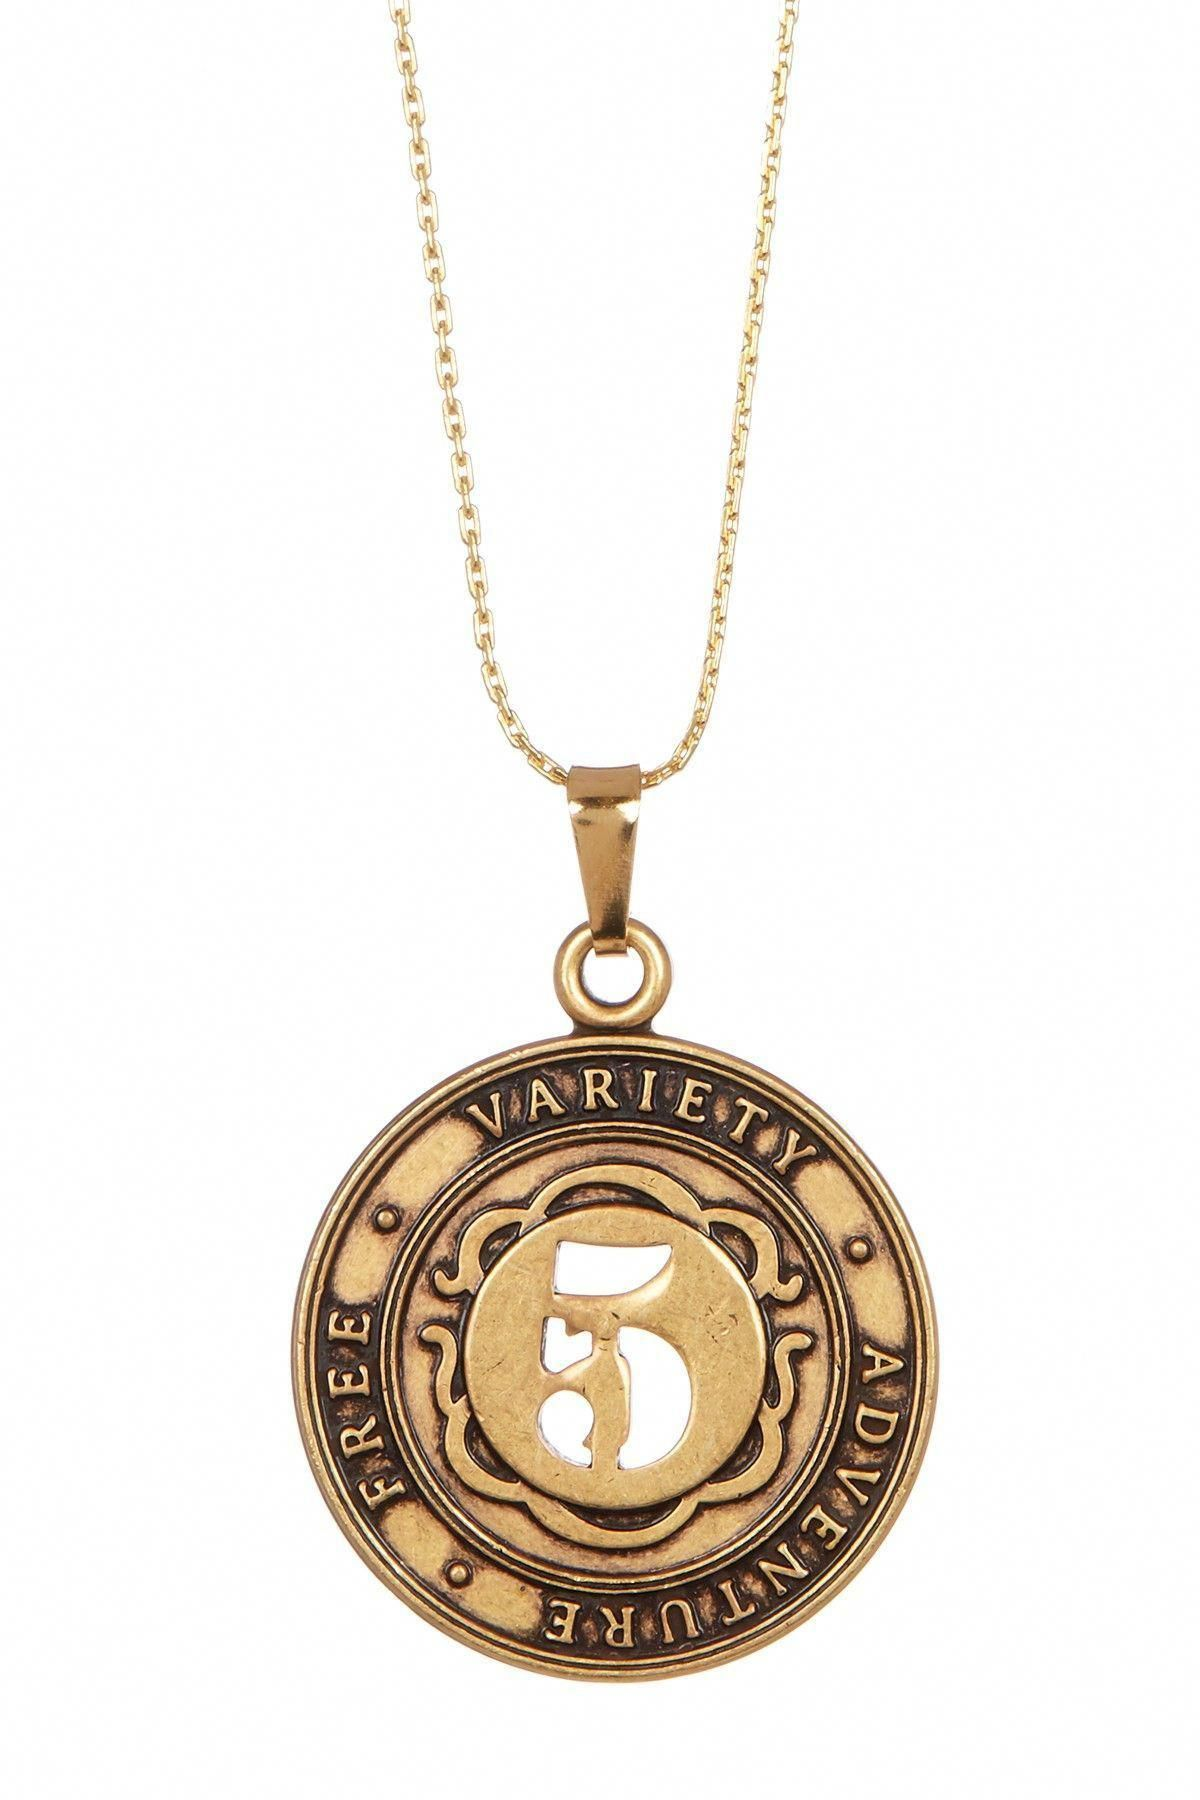 Numerology Number 5 Charm Adjustable Necklace